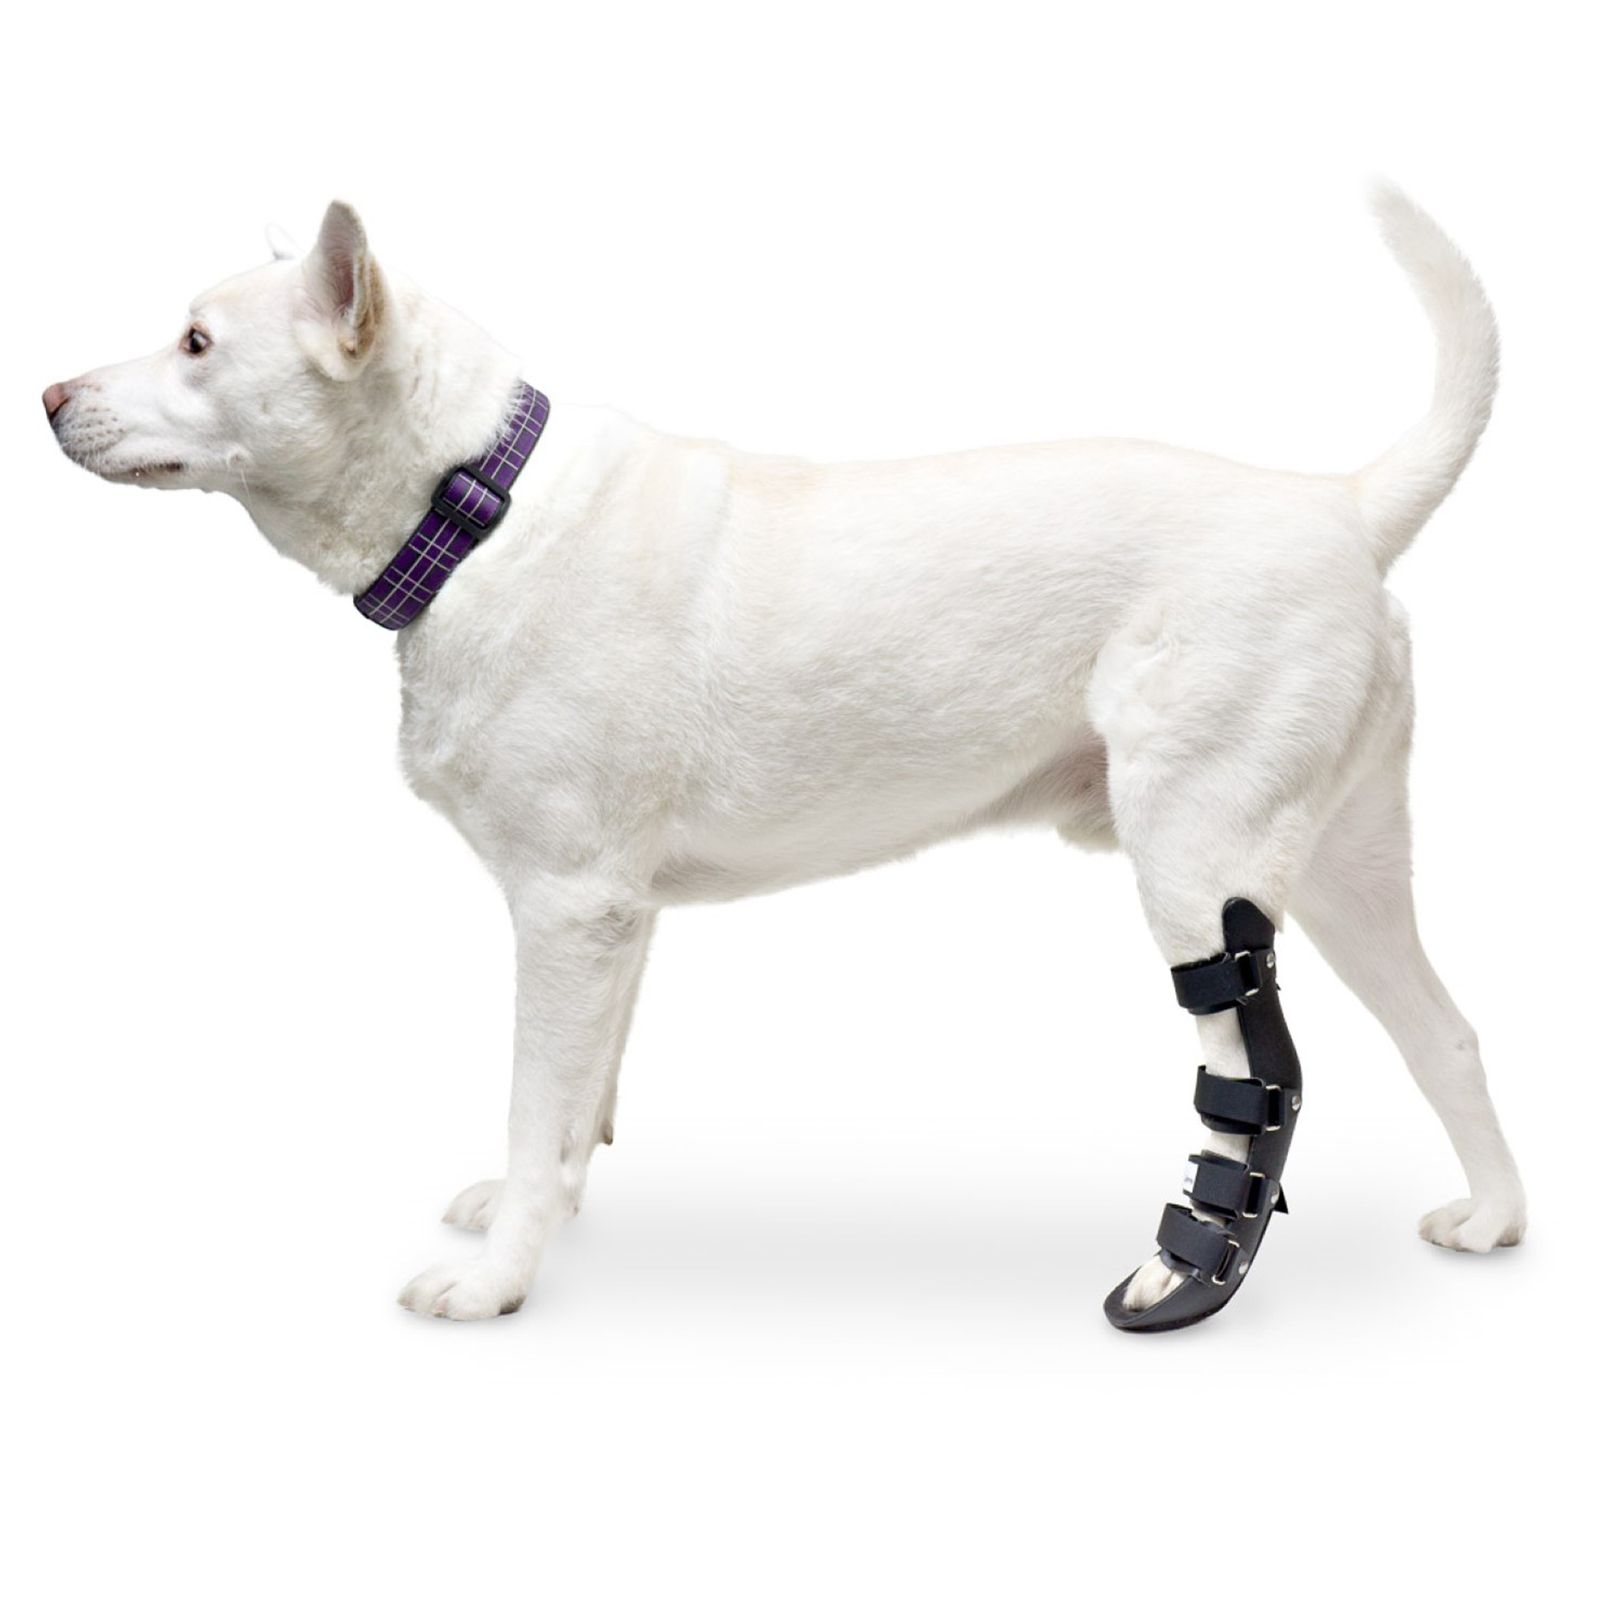 Primary image for Pet Splint for Dogs | Dog Rear Foot Splint Helps Brace Lower Back Limbs | Comes